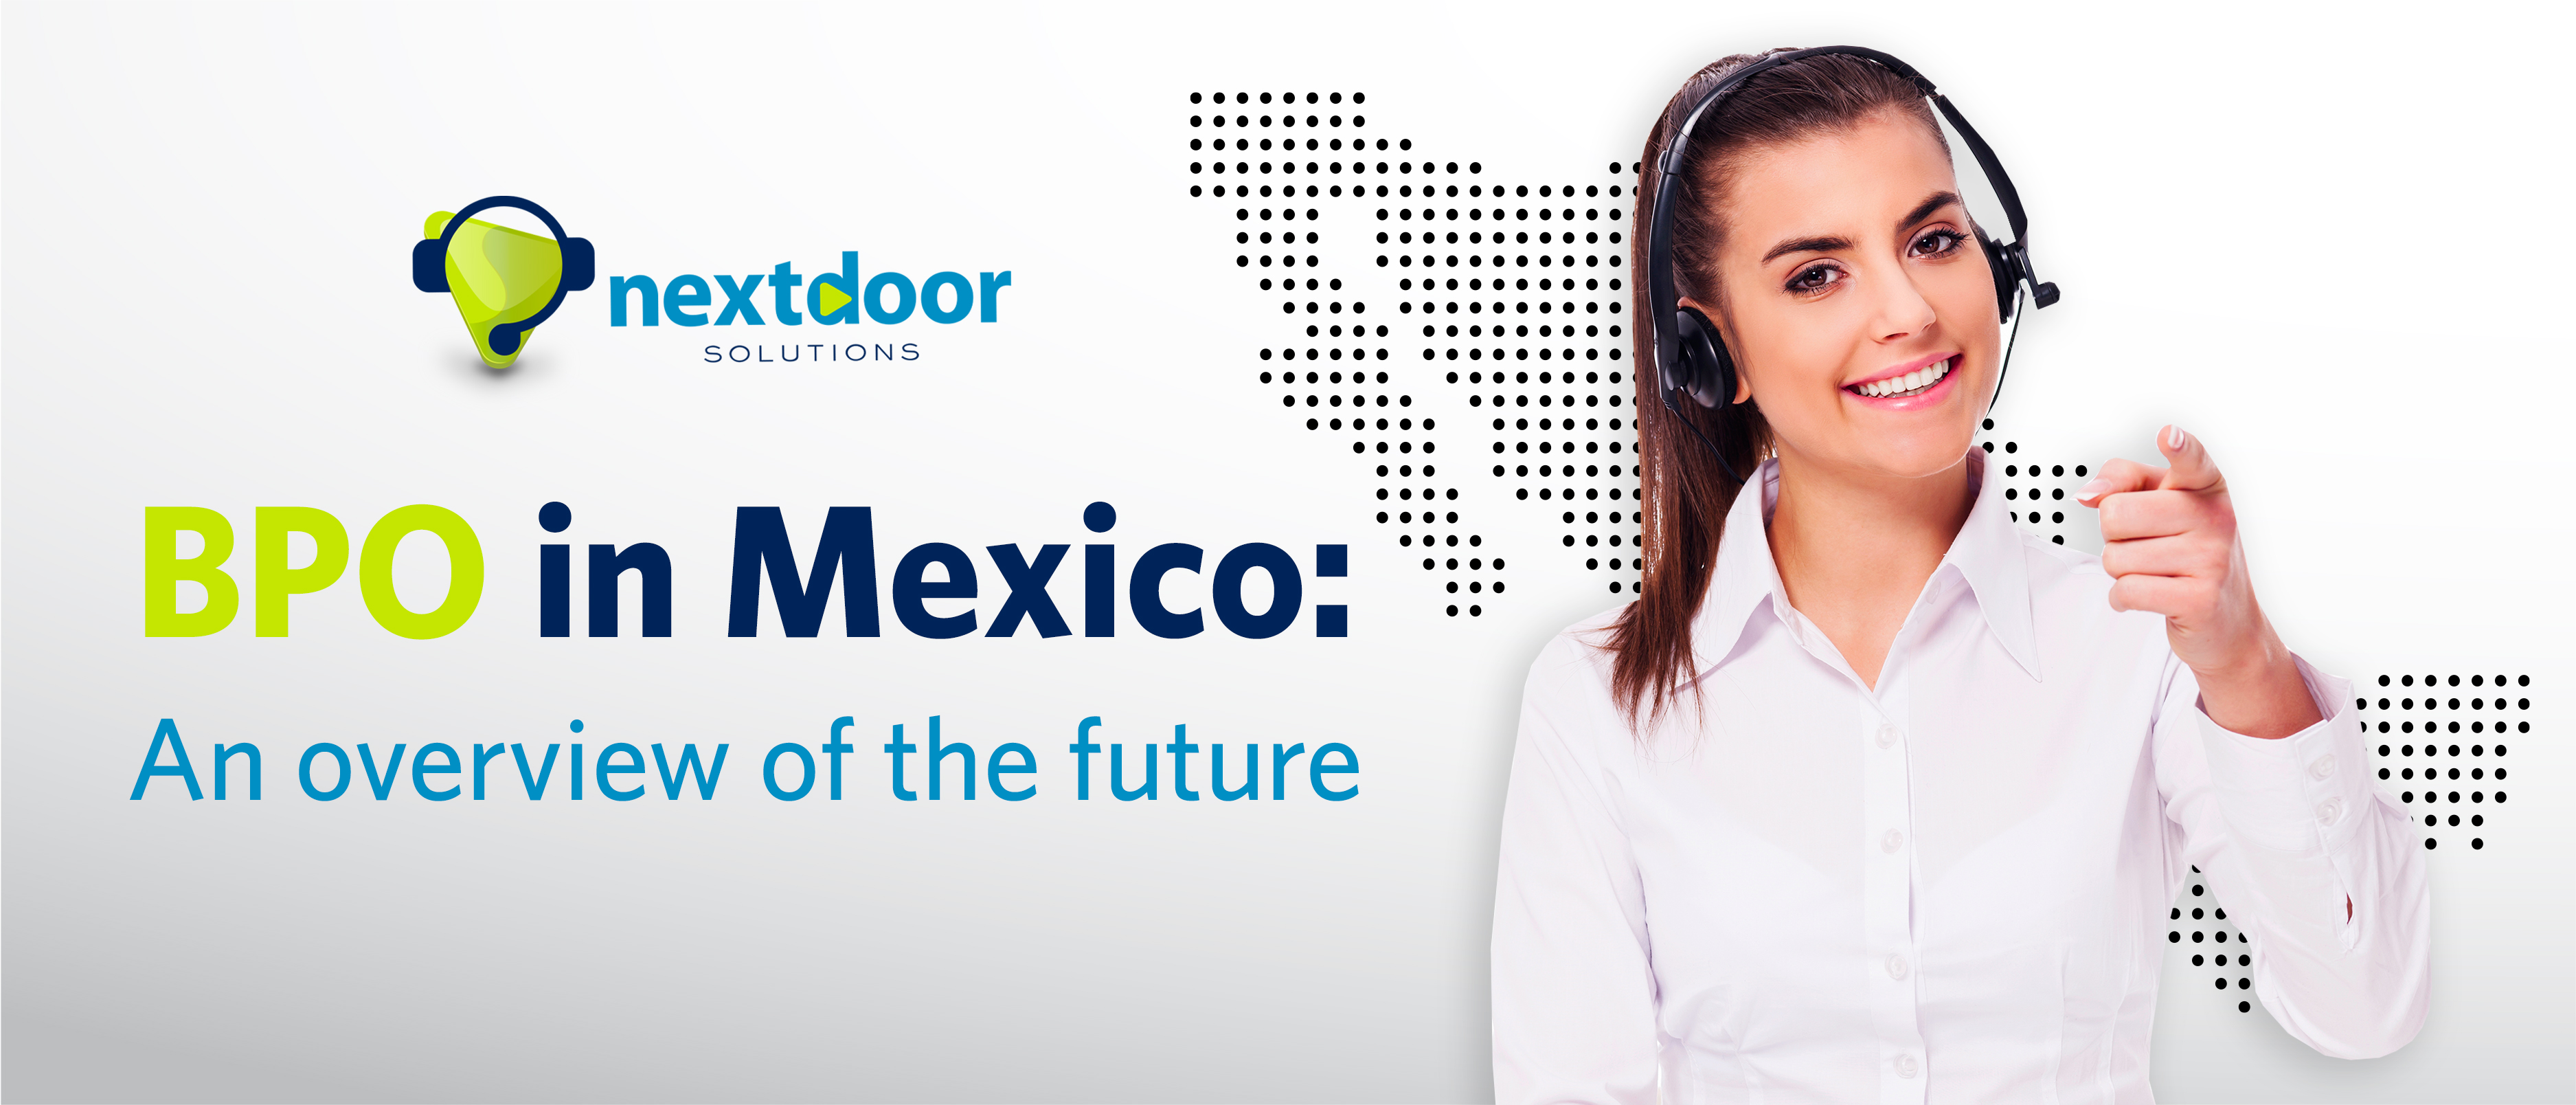 BPO in Mexico: An overview of the future